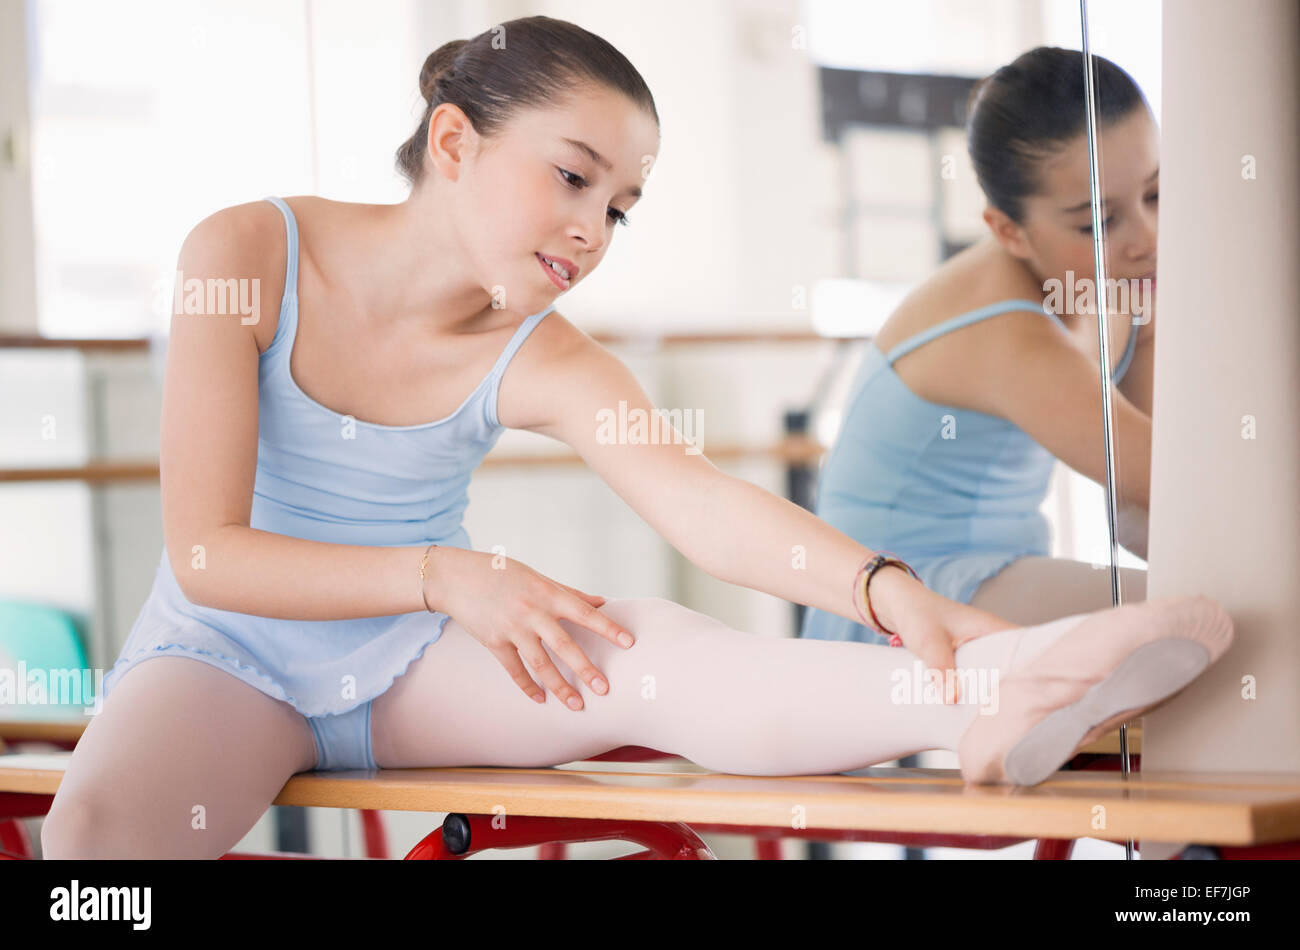 Girl stretching - Stock Image